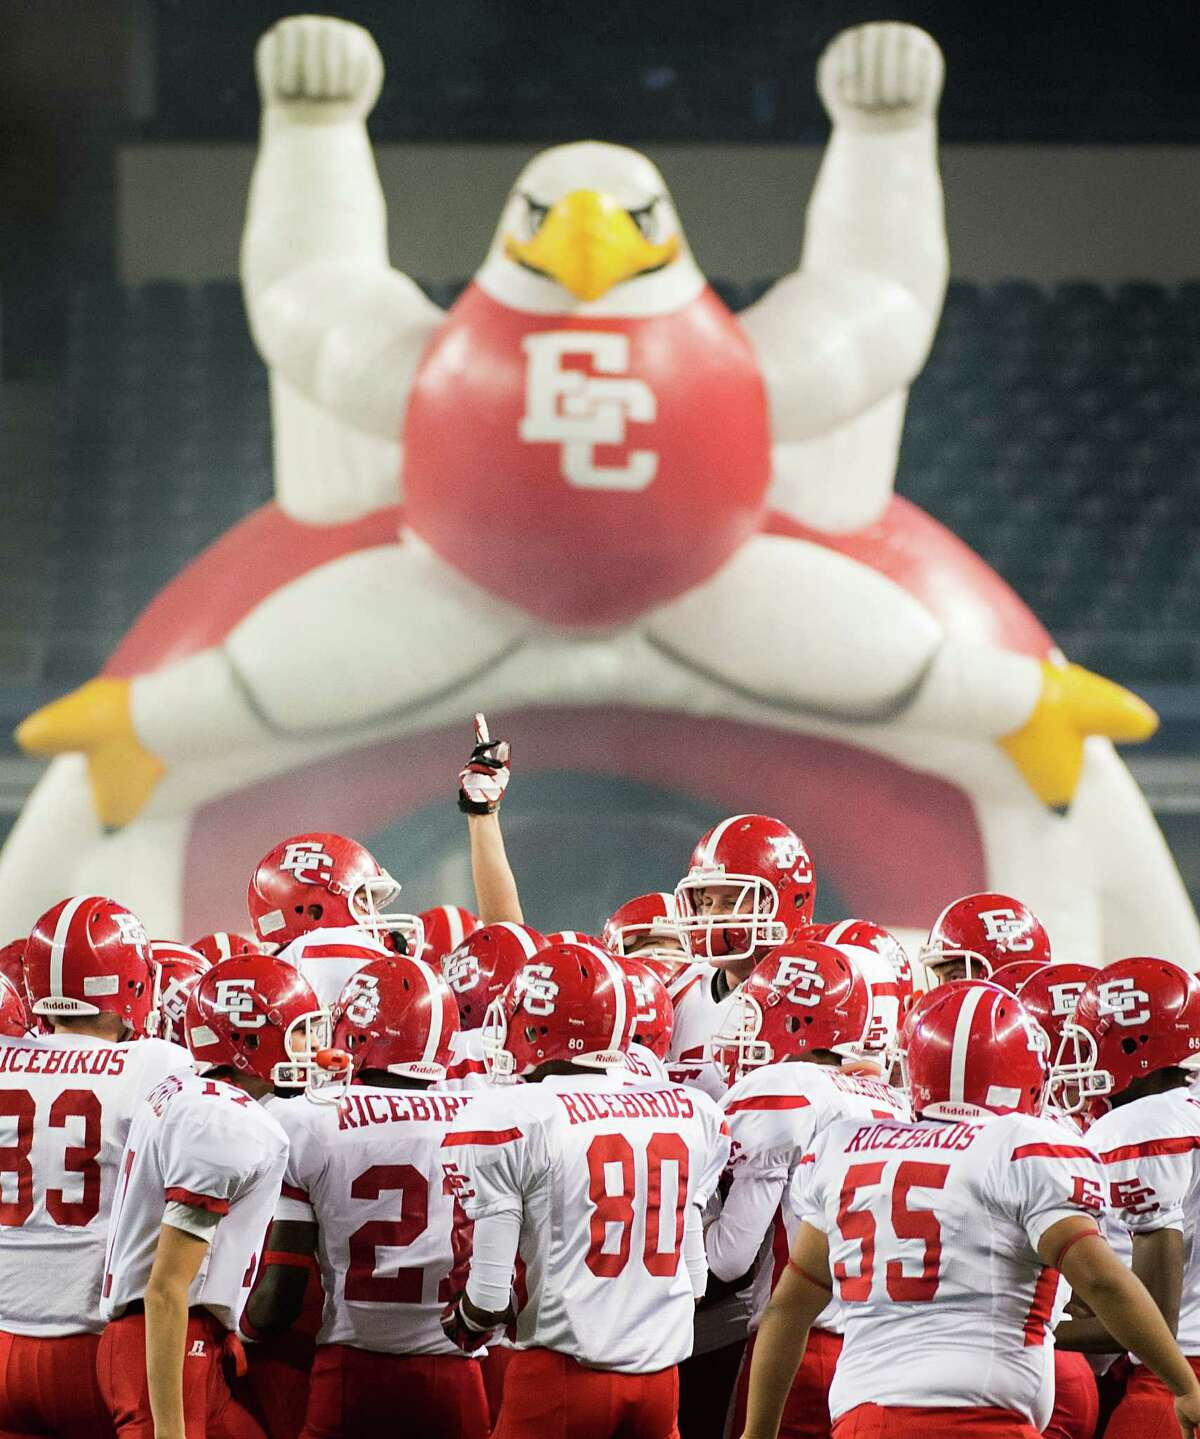 El Campo players take the field to face Stephenville in the Class 3A Division I high school football final at Cowboys Stadium on Friday, Dec. 14, 2012, in Arlington. Smiley N. Pool / Houston Chronicle )